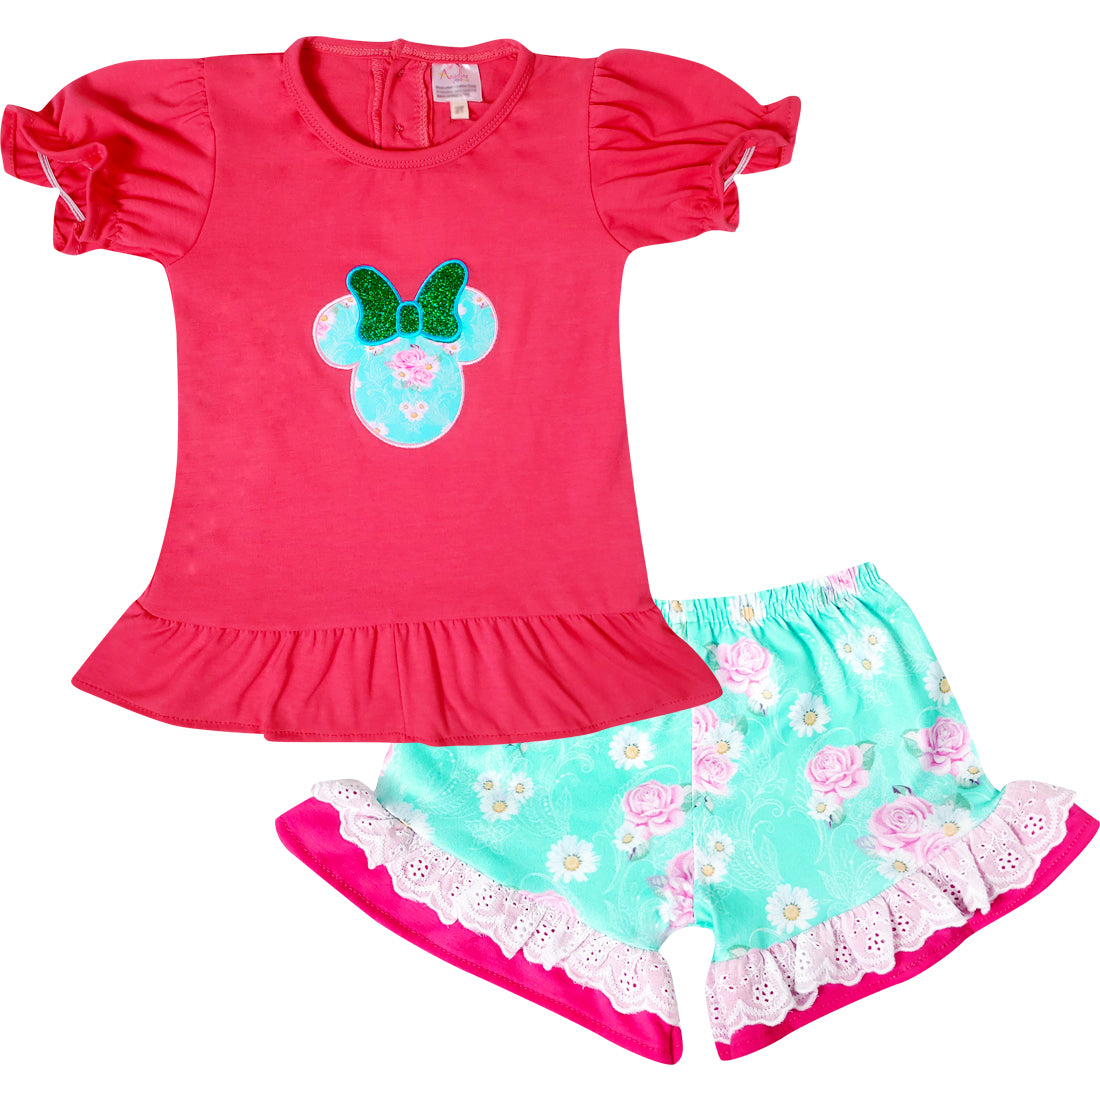 Baby Toddler Little Girls Disney Inspired Minnie Mouse Head Top Shorts Set - Fuchsia Mint